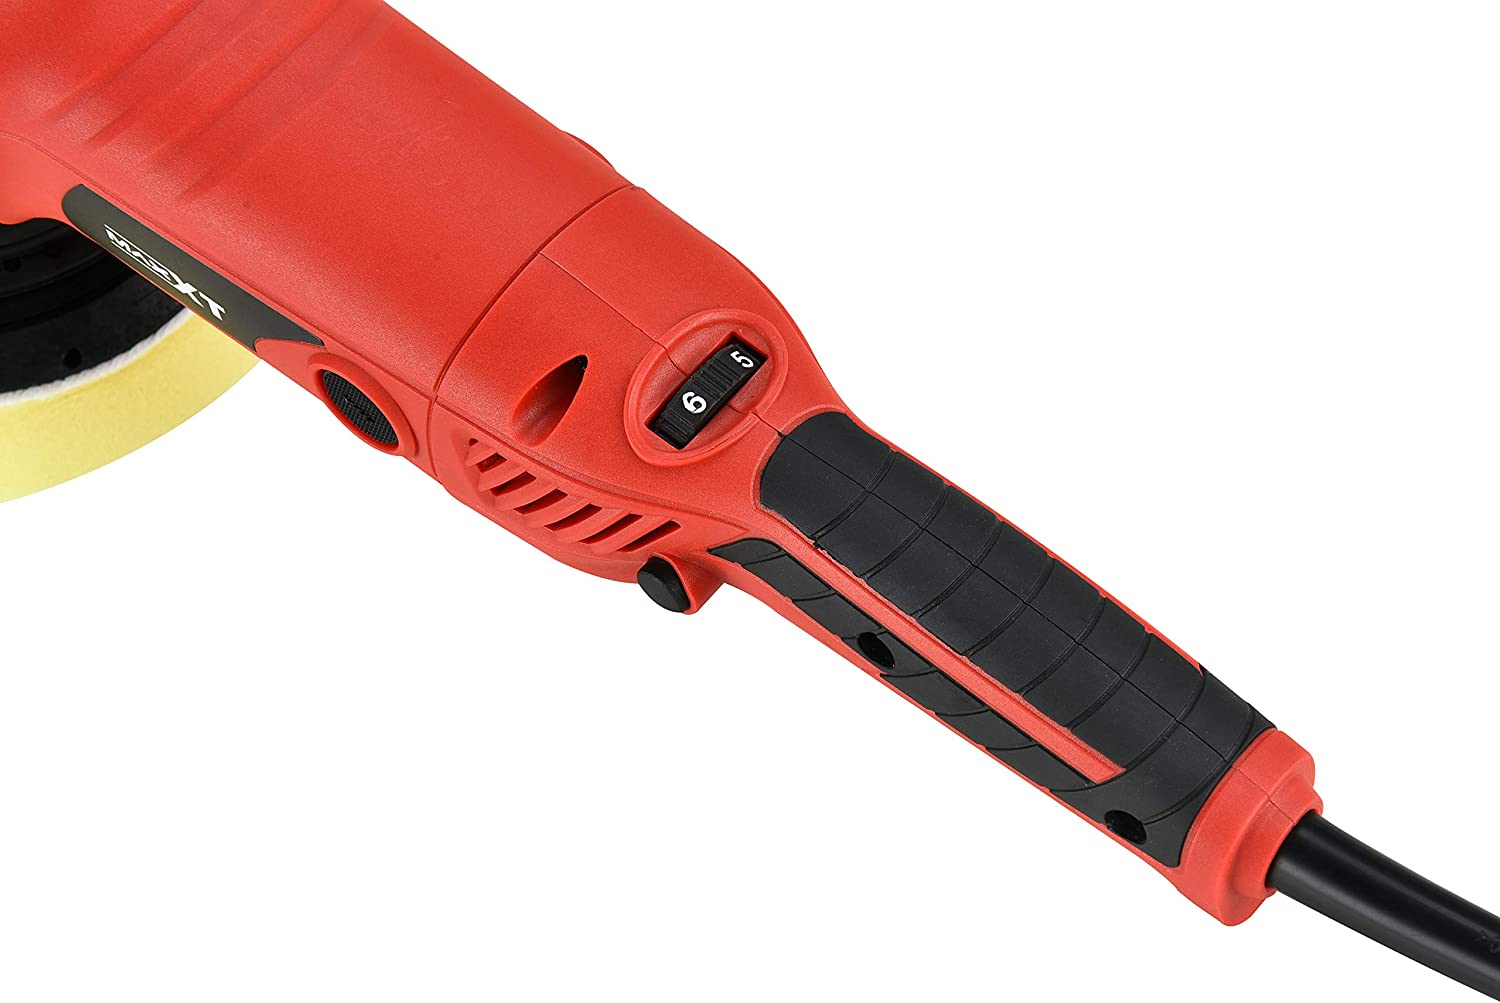 13ft Long Cable; Comes with 1 Beveled Foam Pad. MAXXT Dual Action Buffer Polisher;15mm Random orbit; Infinitely Variable Speed Between 2100-5000 opm; Powerful and Durable 6A Motor; 4M